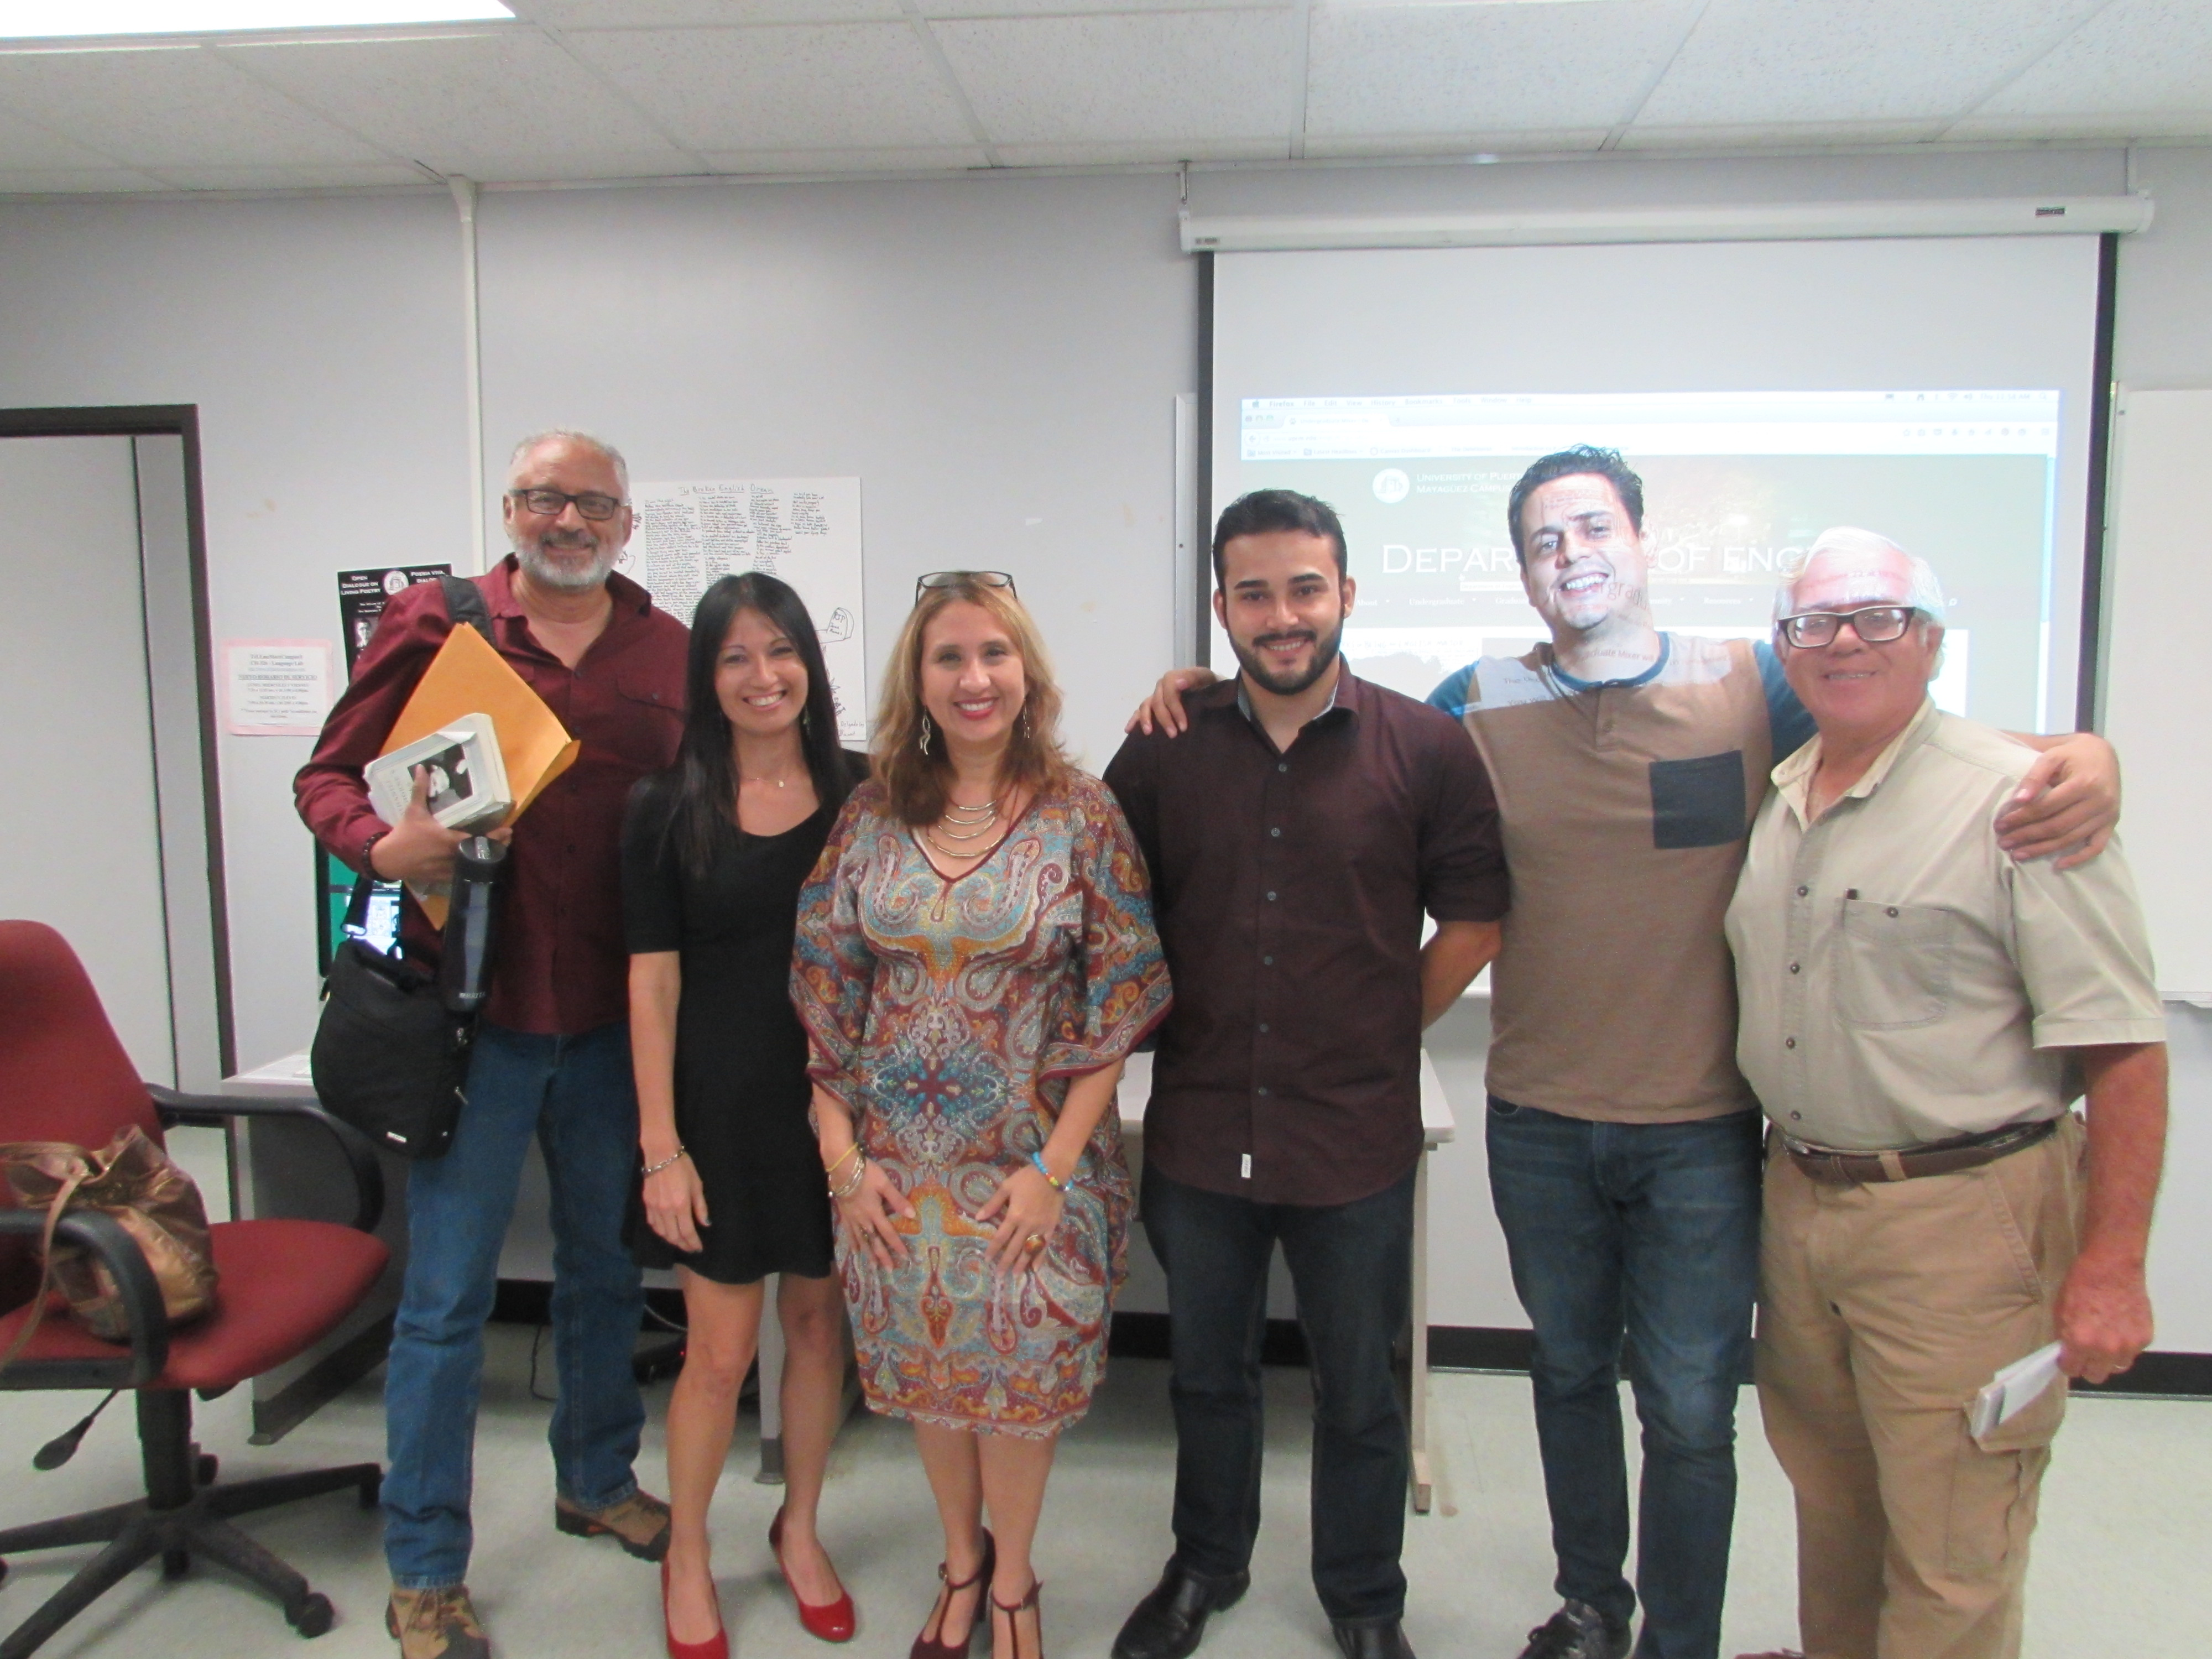 Faculty Advisors and well known college professors of the English Department posing for the camera.